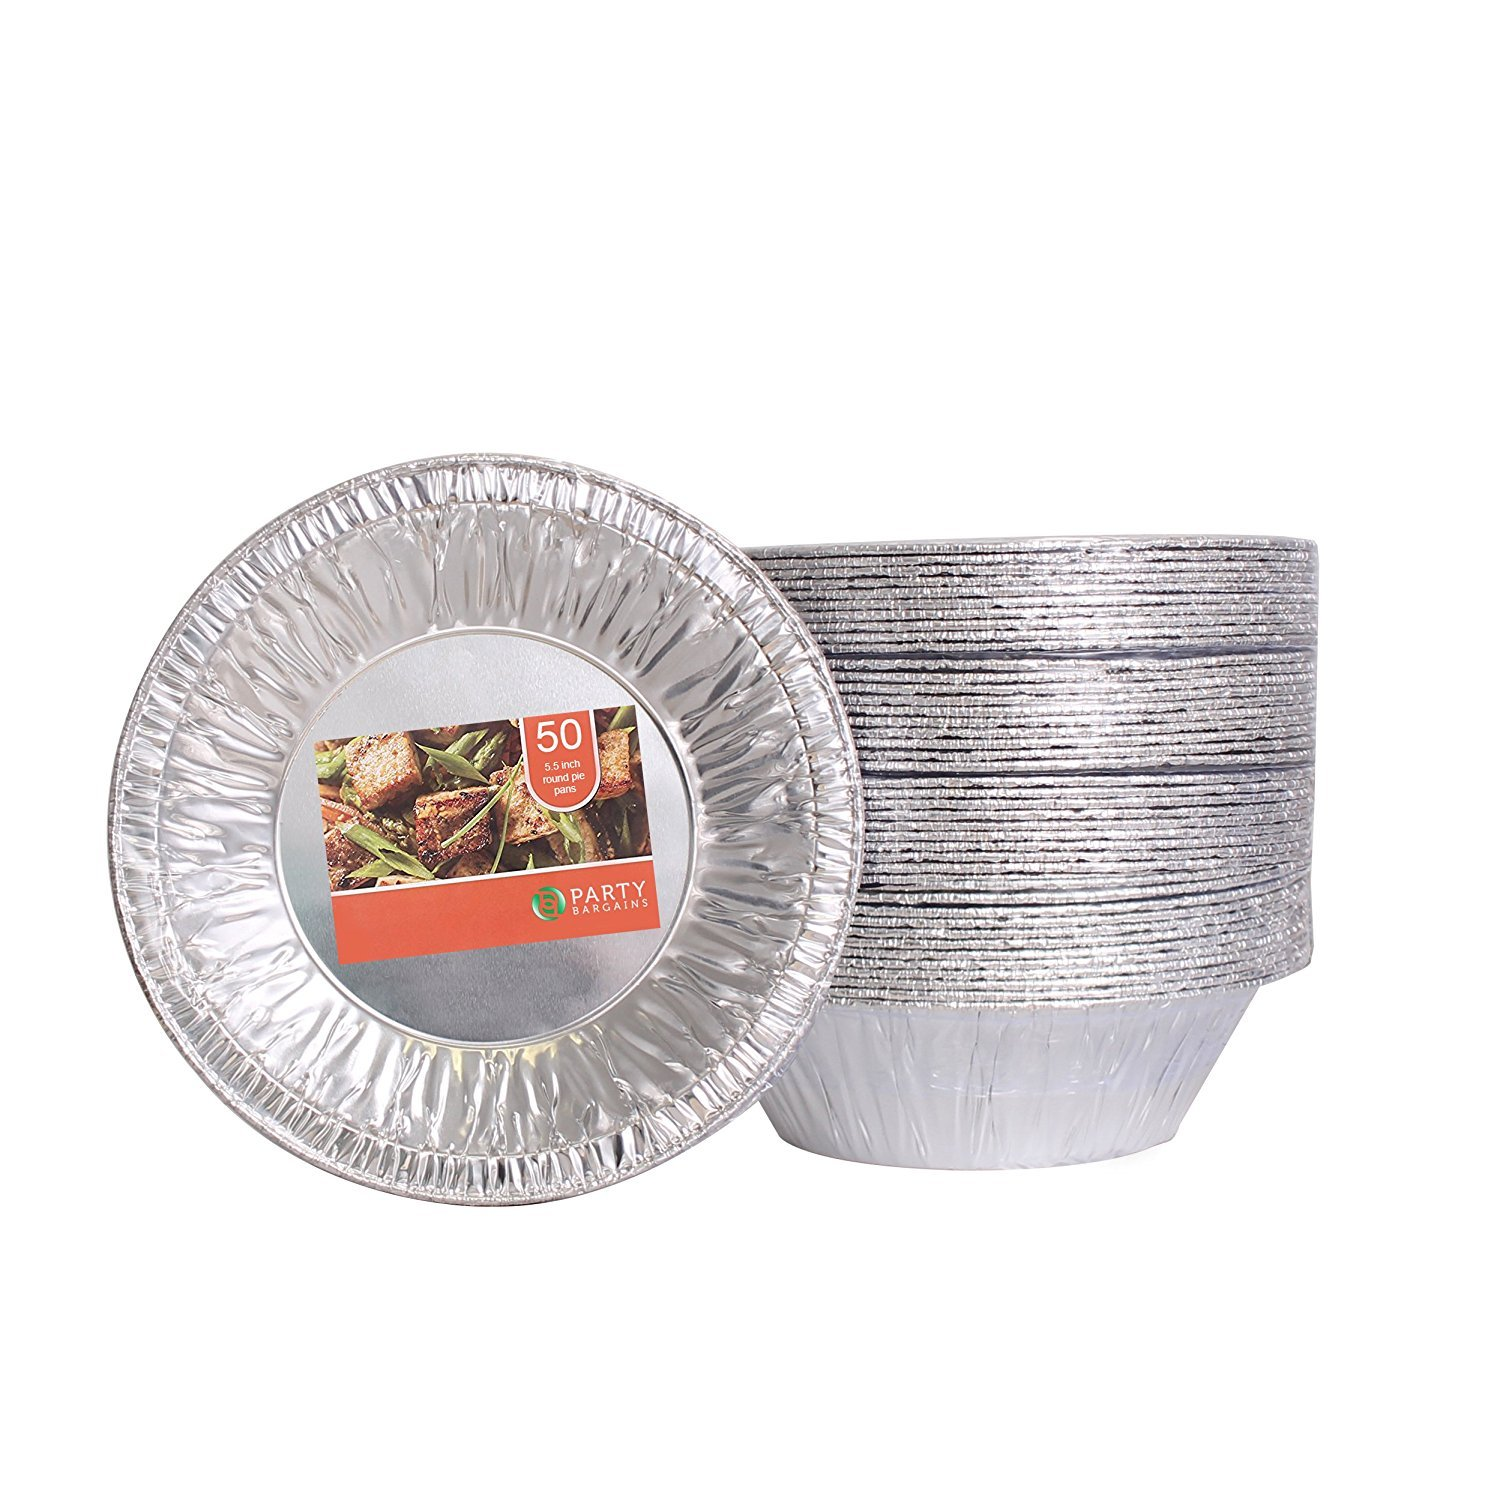 Party Bargains Aluminum Foil Tart/Pie Pans | Perfect for Homemade Cakes & Pies - 5.5 Inch | Pack of 50